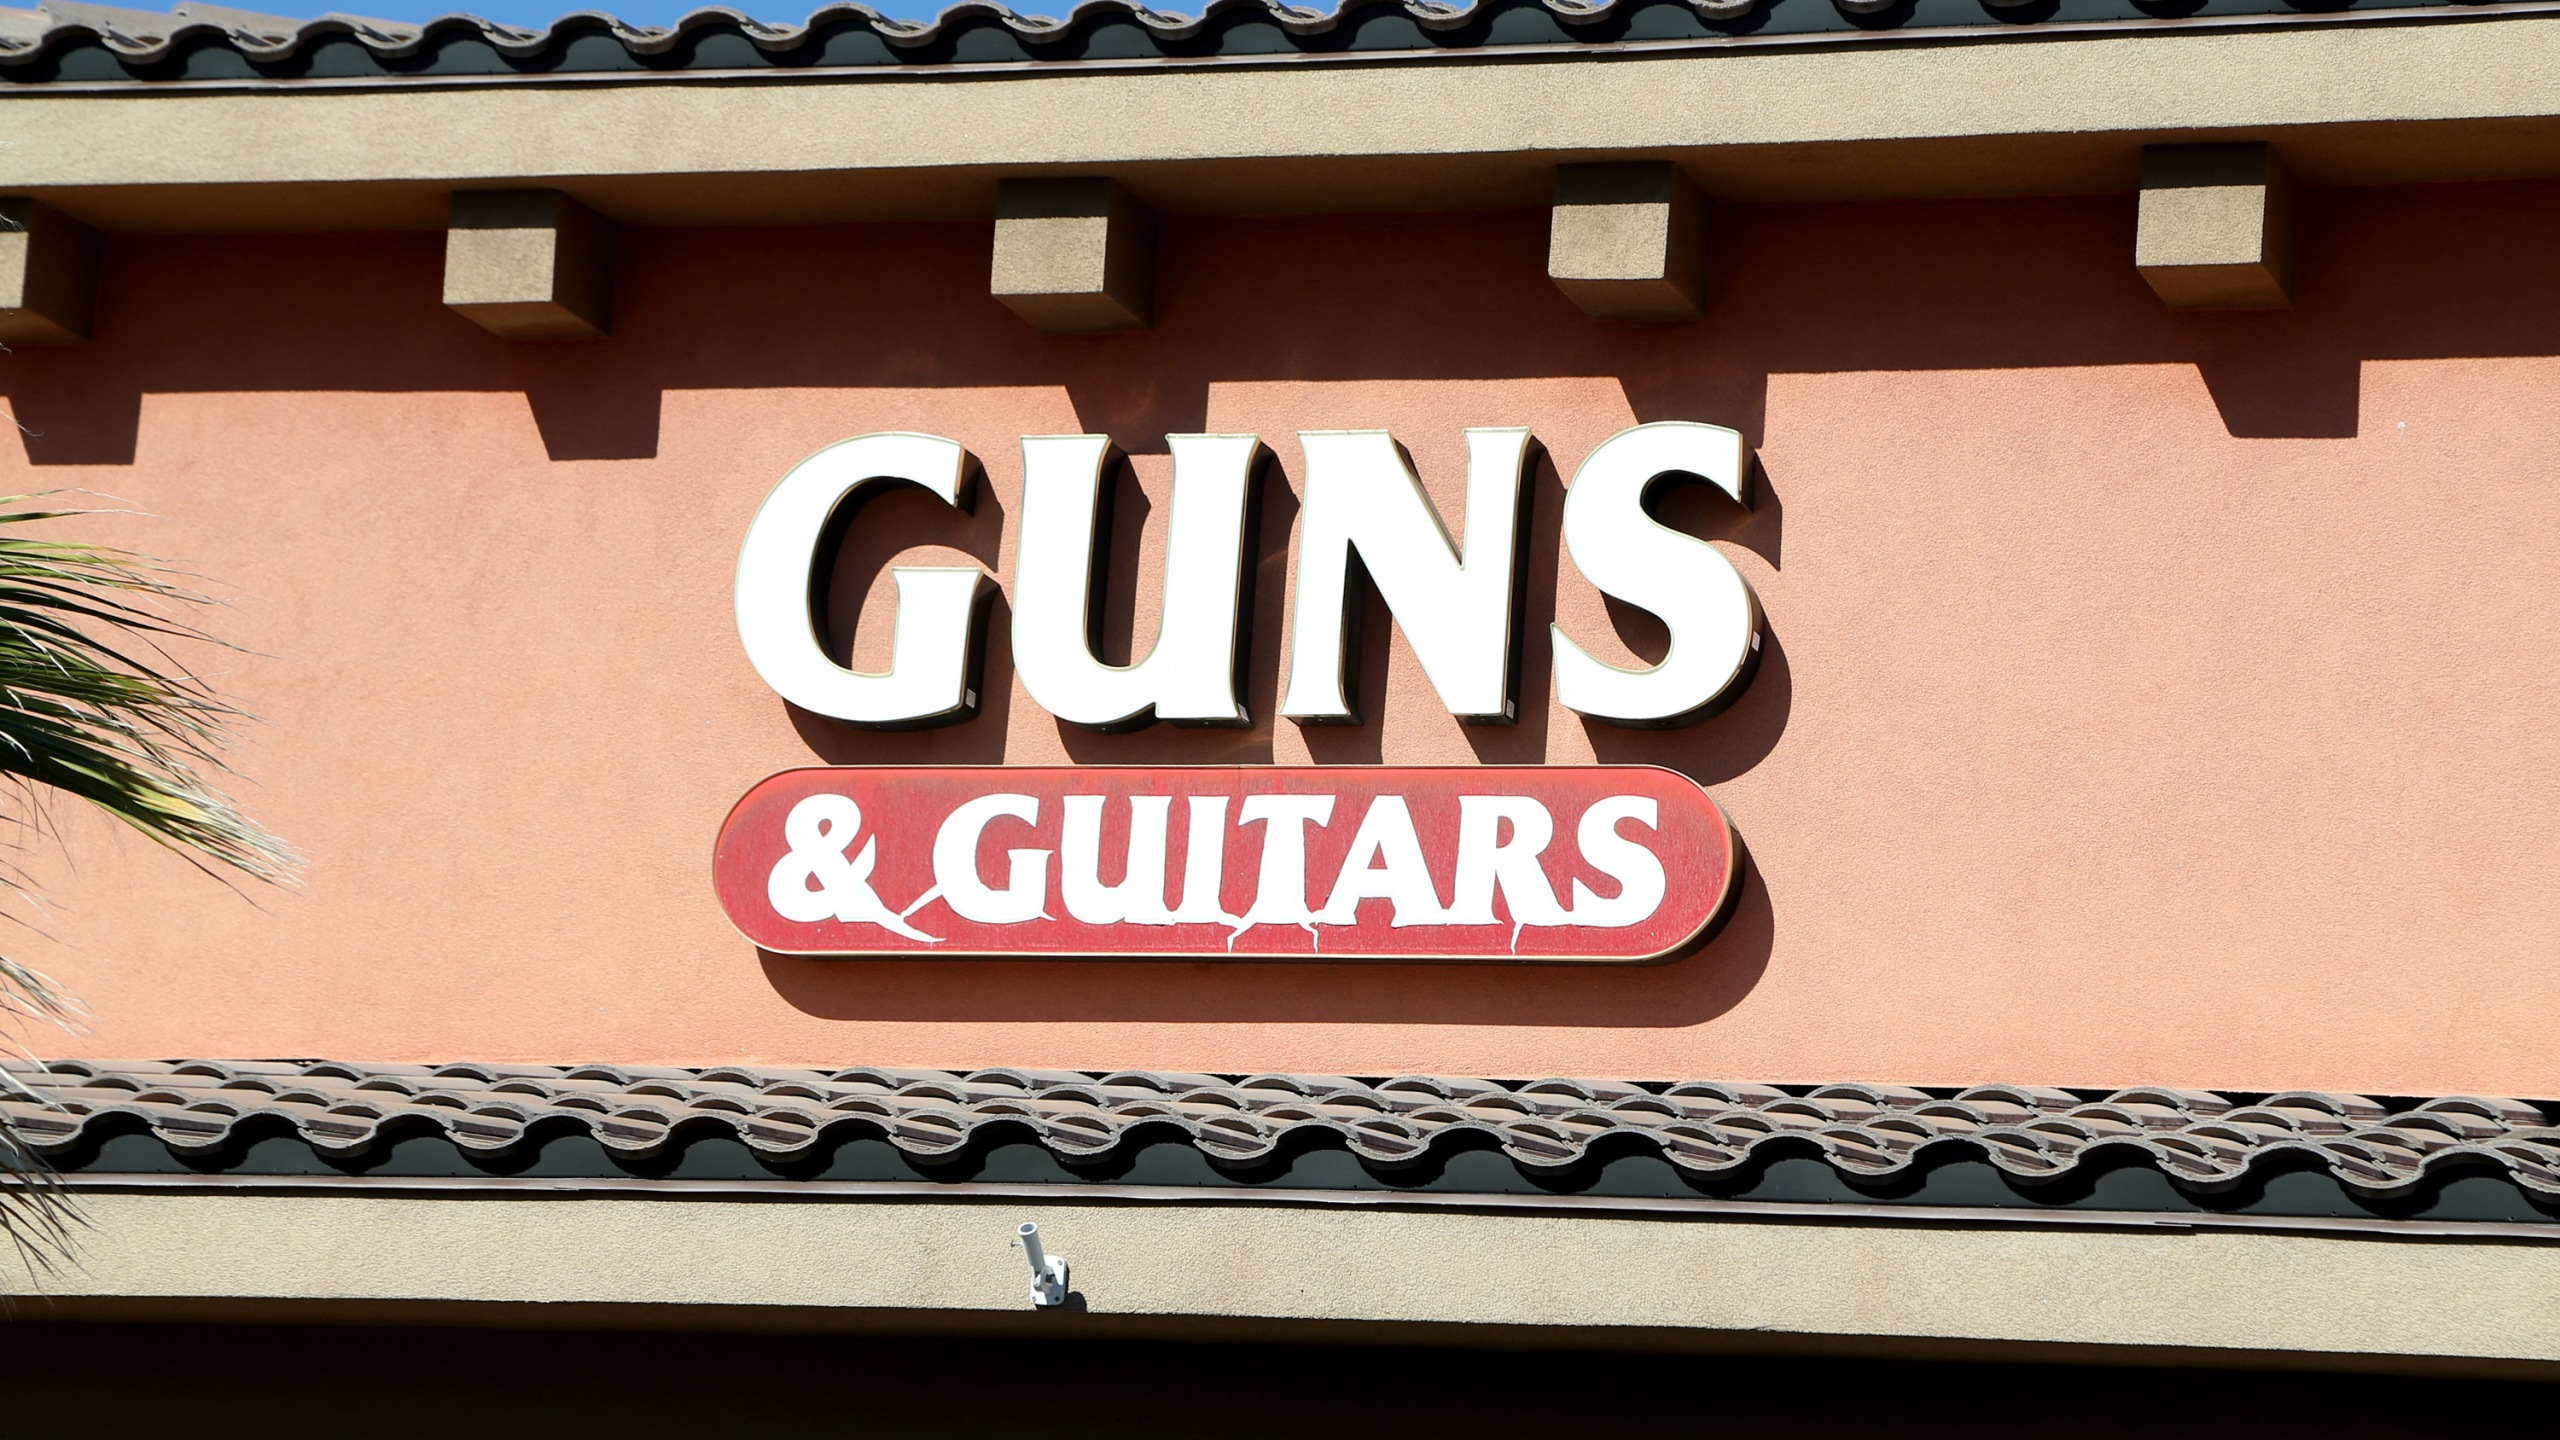 A sign for Guns & Guitars, a gun shop, where suspected Las Vegas gunman Stephen Paddock allegedly purchased firearms, October 2, 2017 in Mesquite, Nevada. (Credit: Gabe Ginsberg/Getty Images)